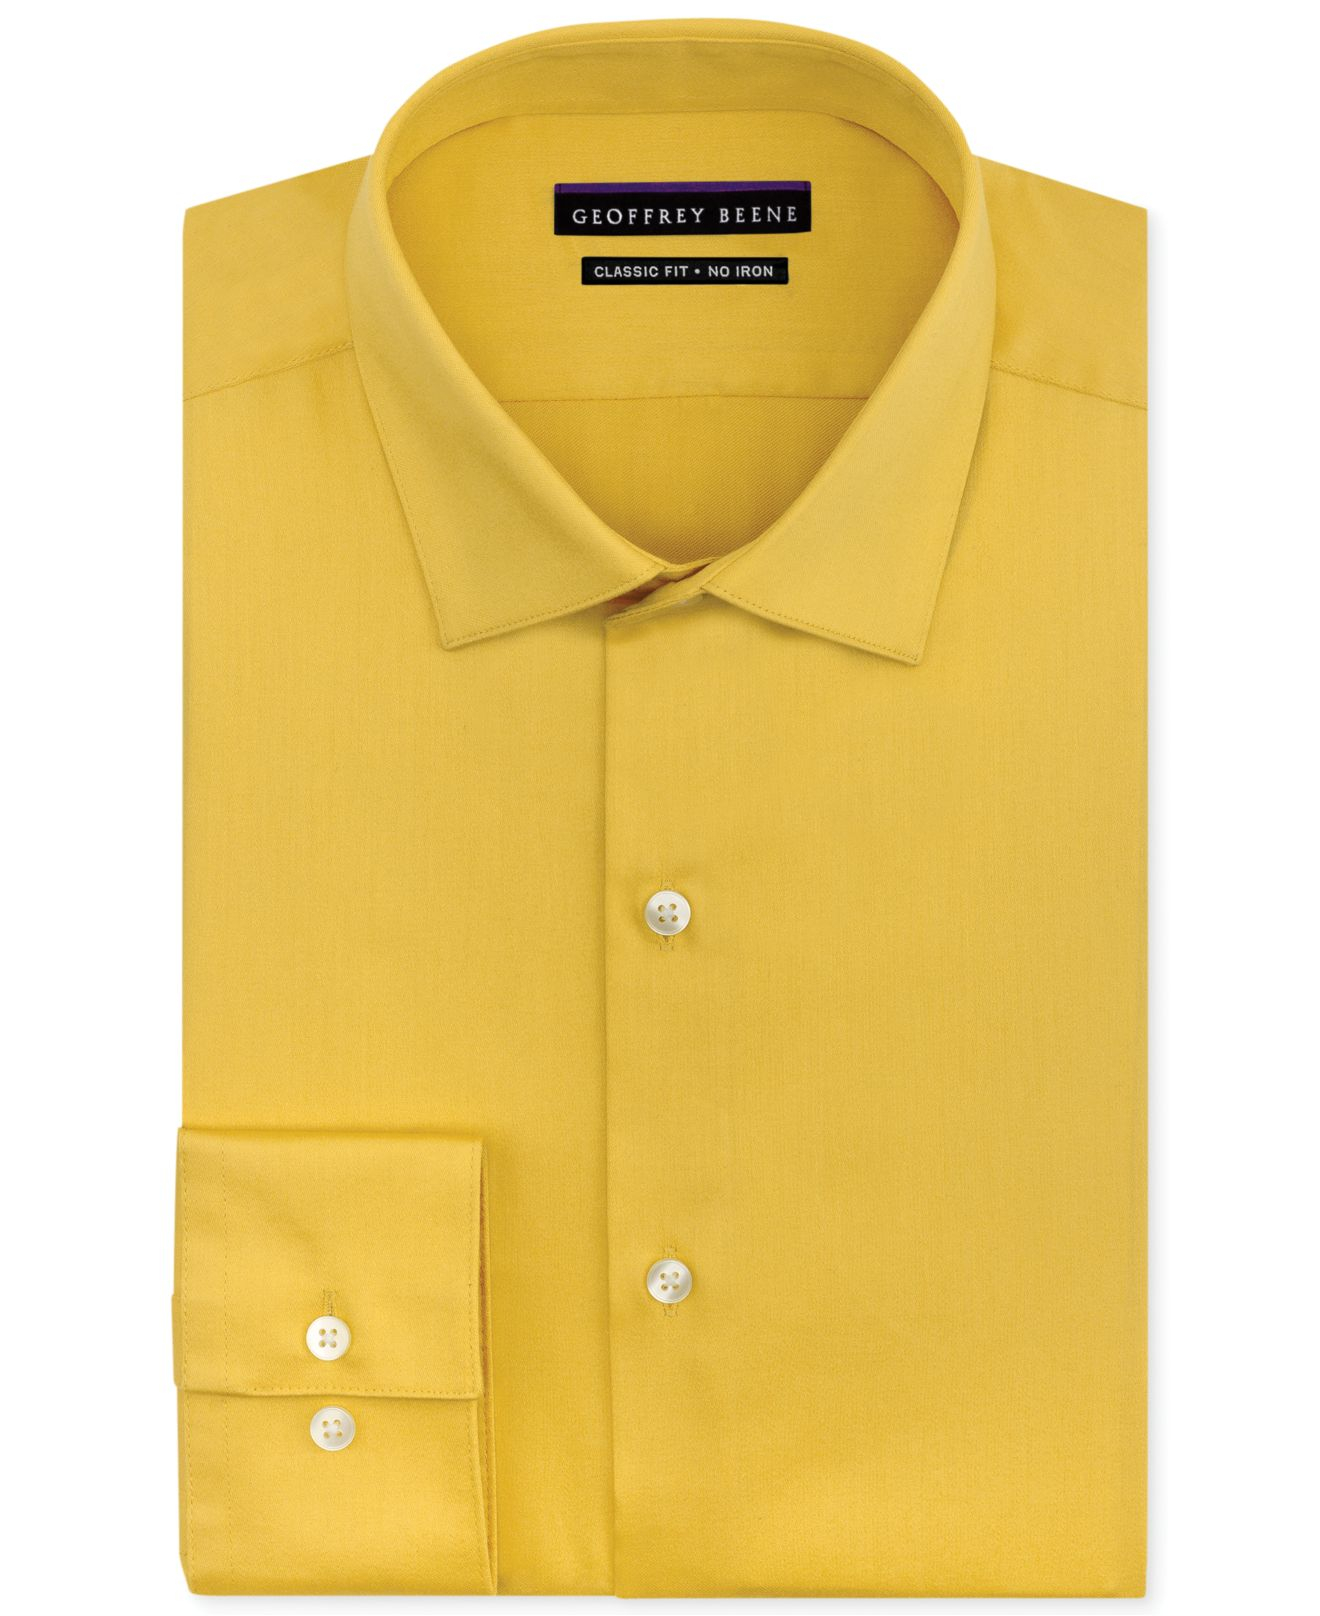 collection yellow dress shirts for men pictures best